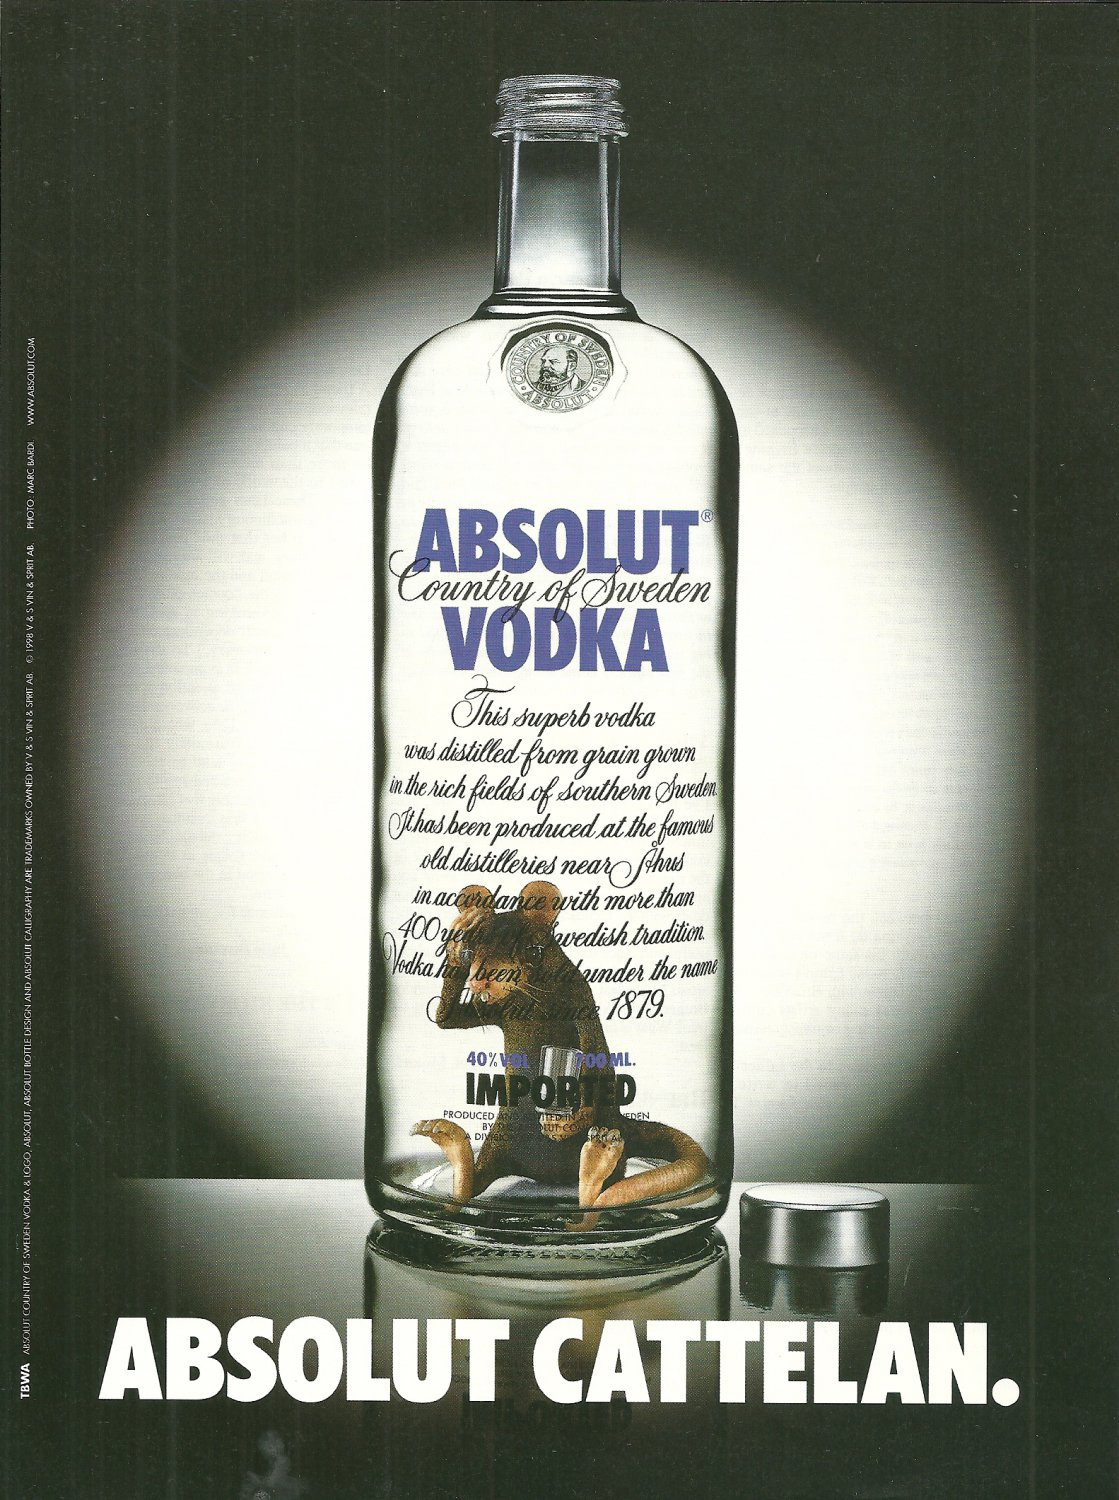 ABSOLUT CATTELAN British Vodka Magazine Ad MAURIZIO CATTELAN